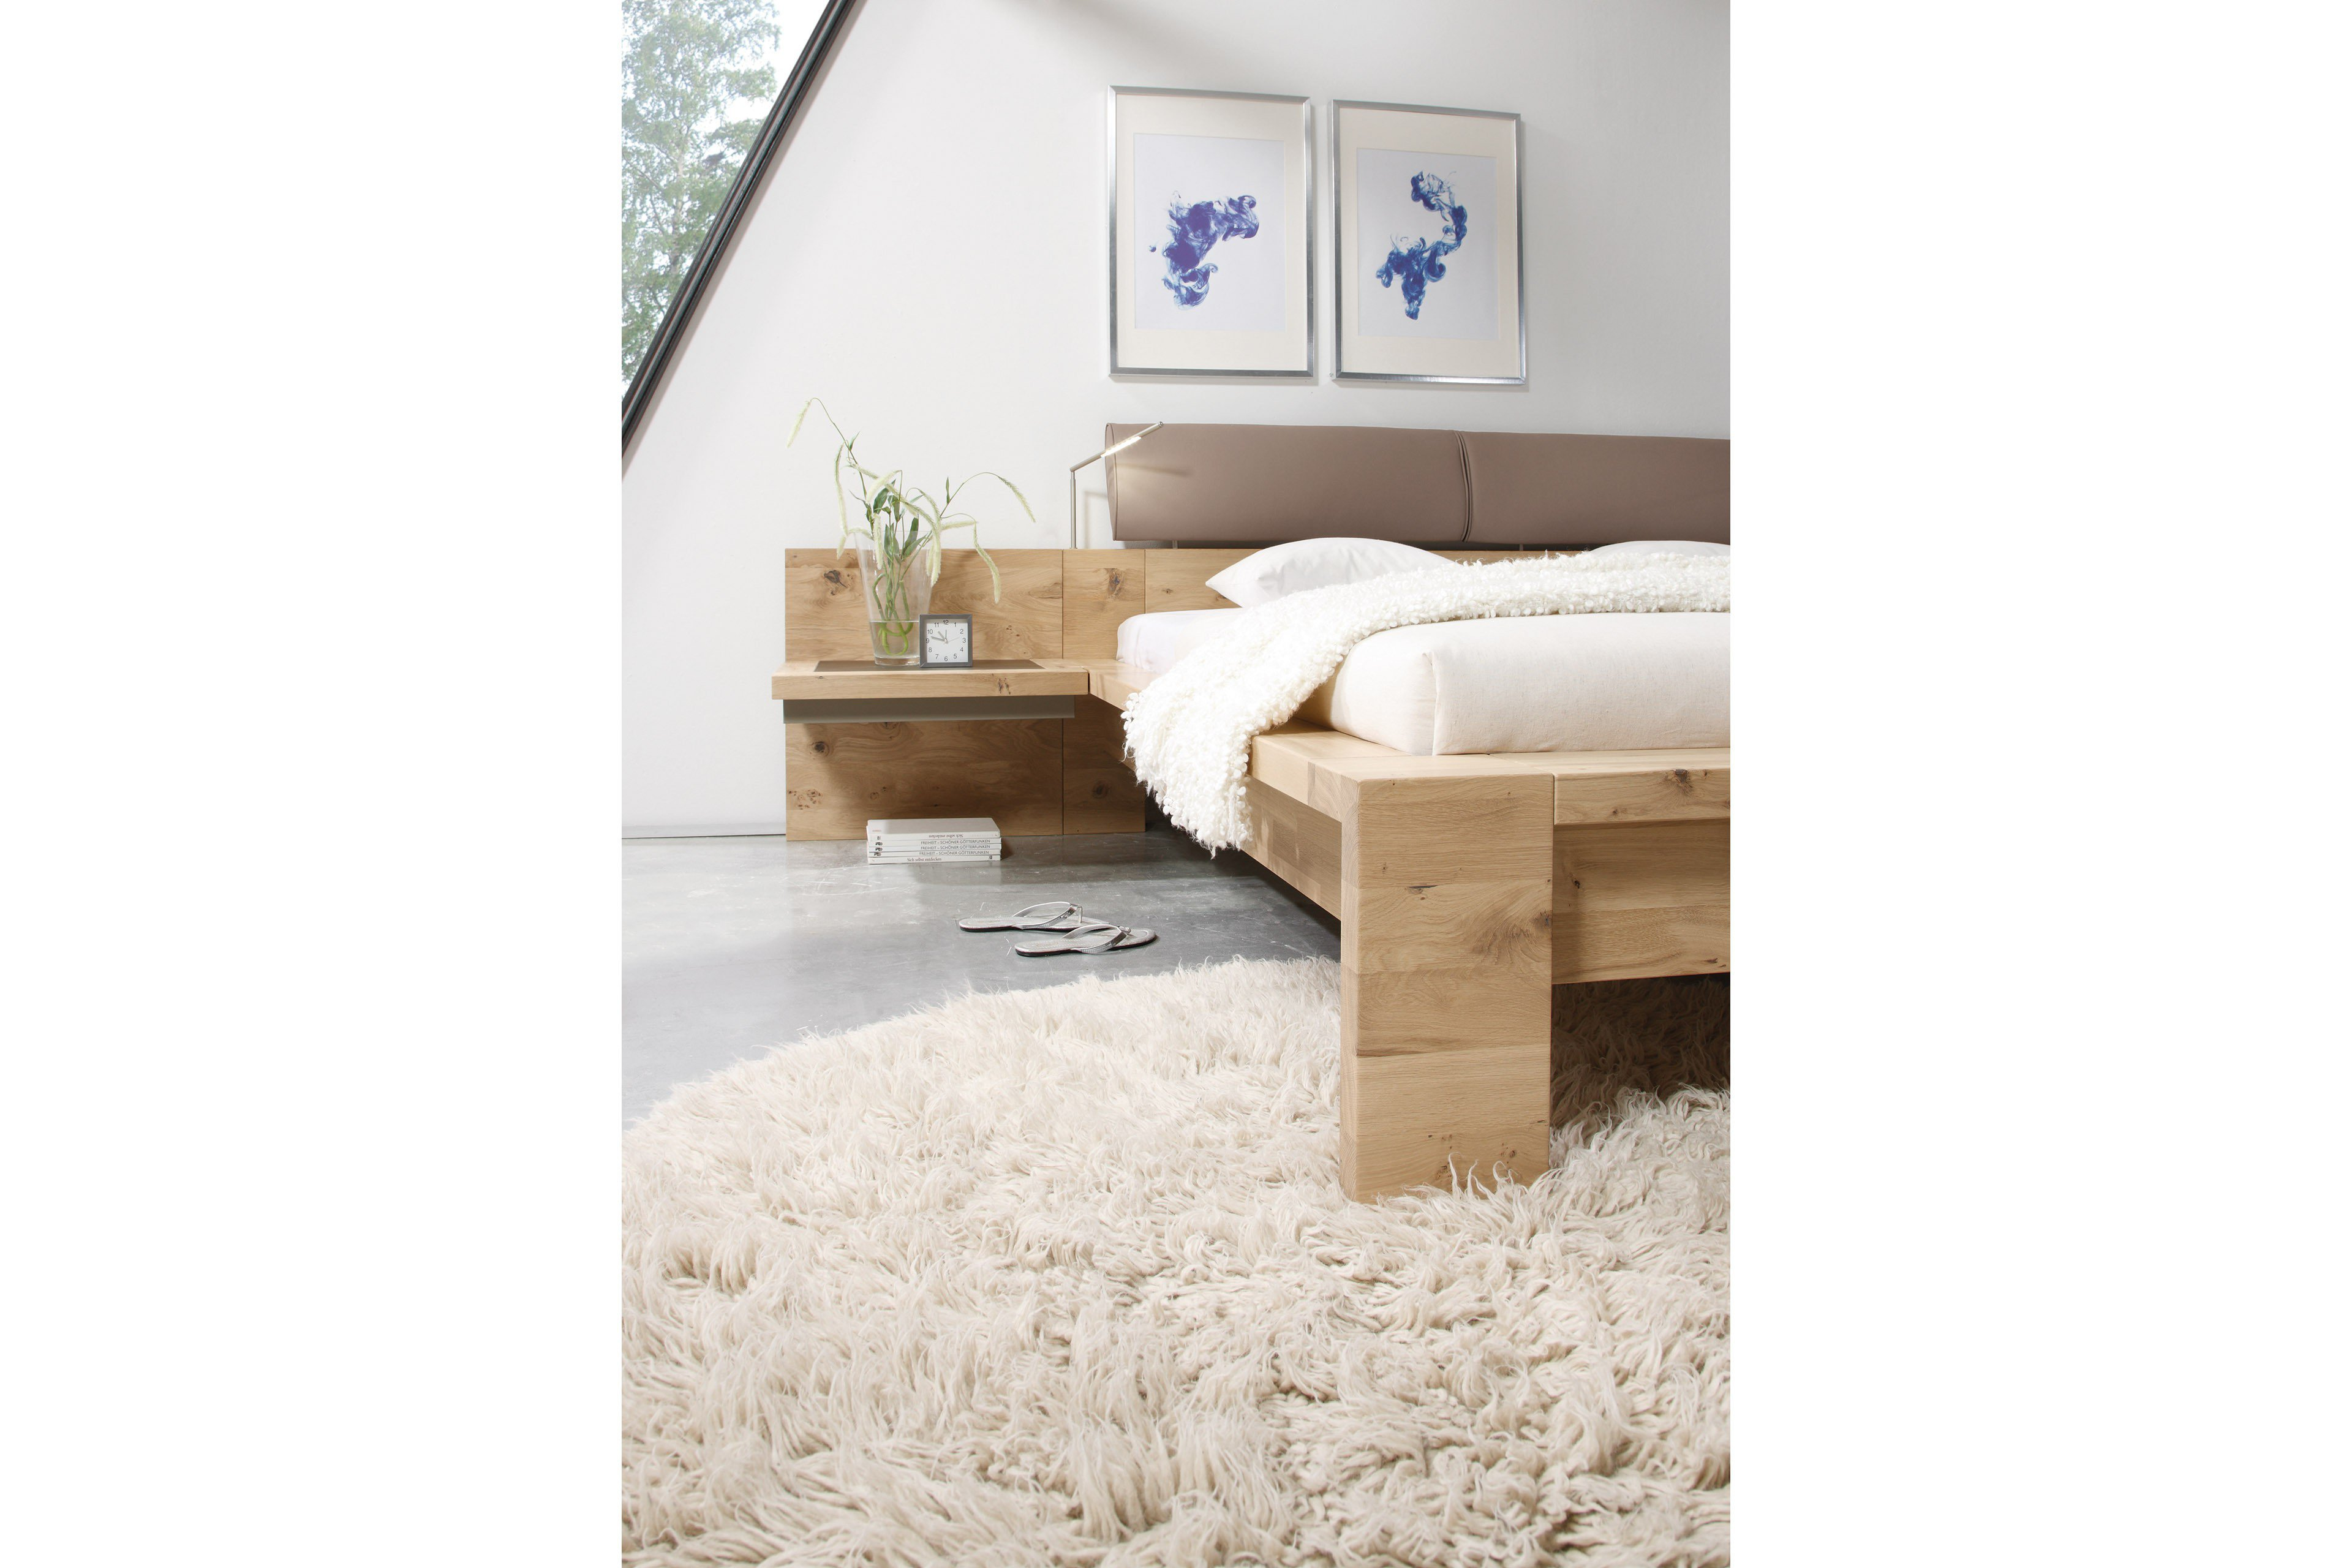 thielemeyer isola schlafzimmer wildeiche massiv m bel. Black Bedroom Furniture Sets. Home Design Ideas